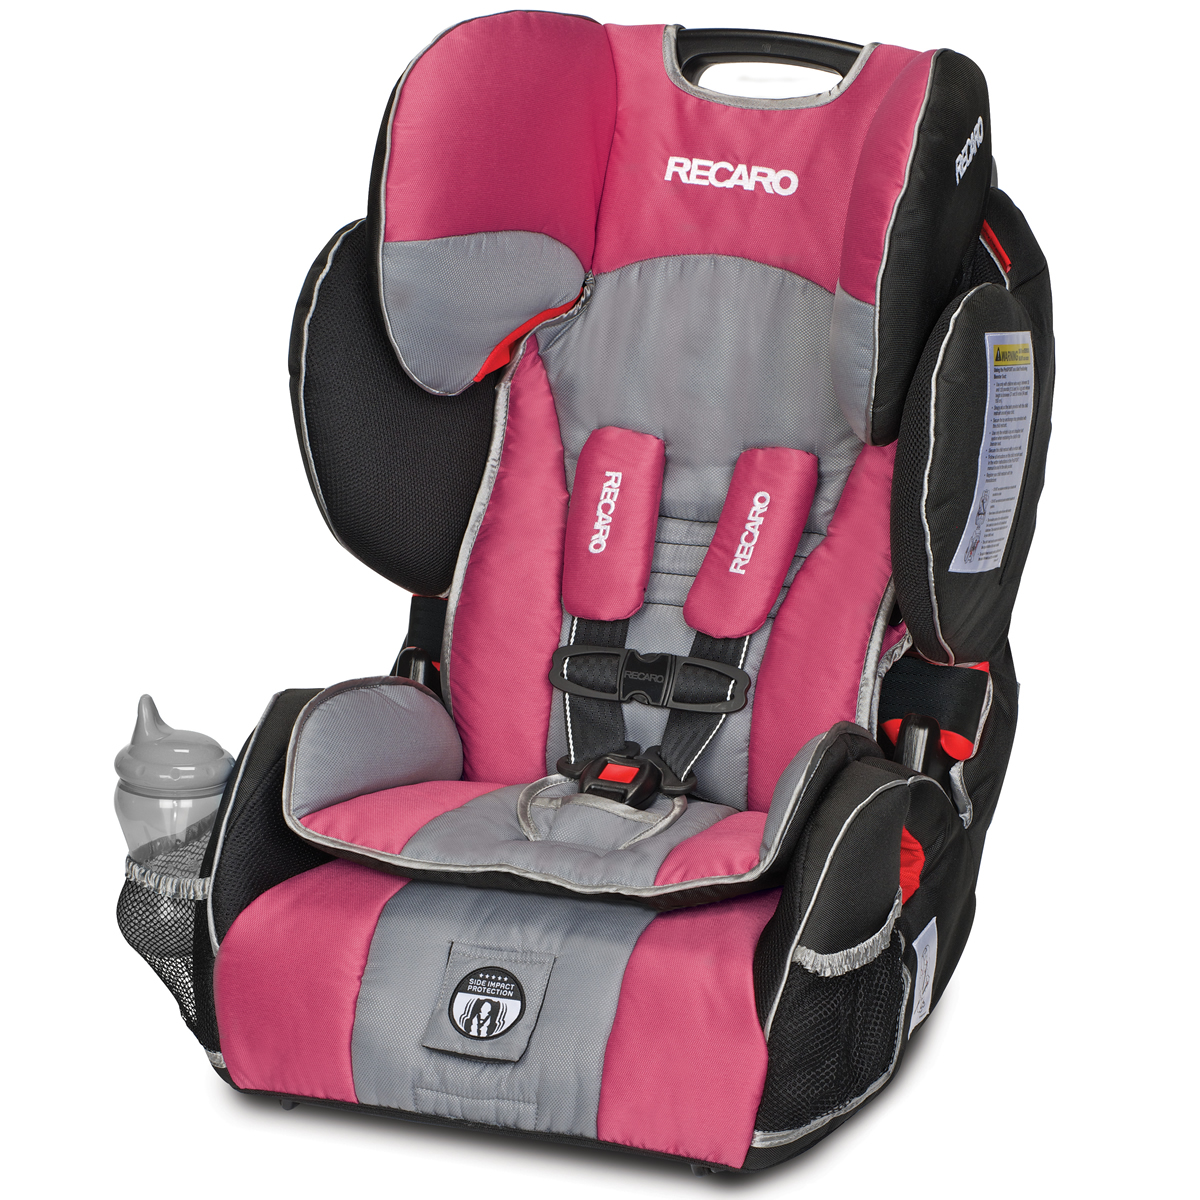 recaro performance sport combination harness to booster car seat rose. Black Bedroom Furniture Sets. Home Design Ideas